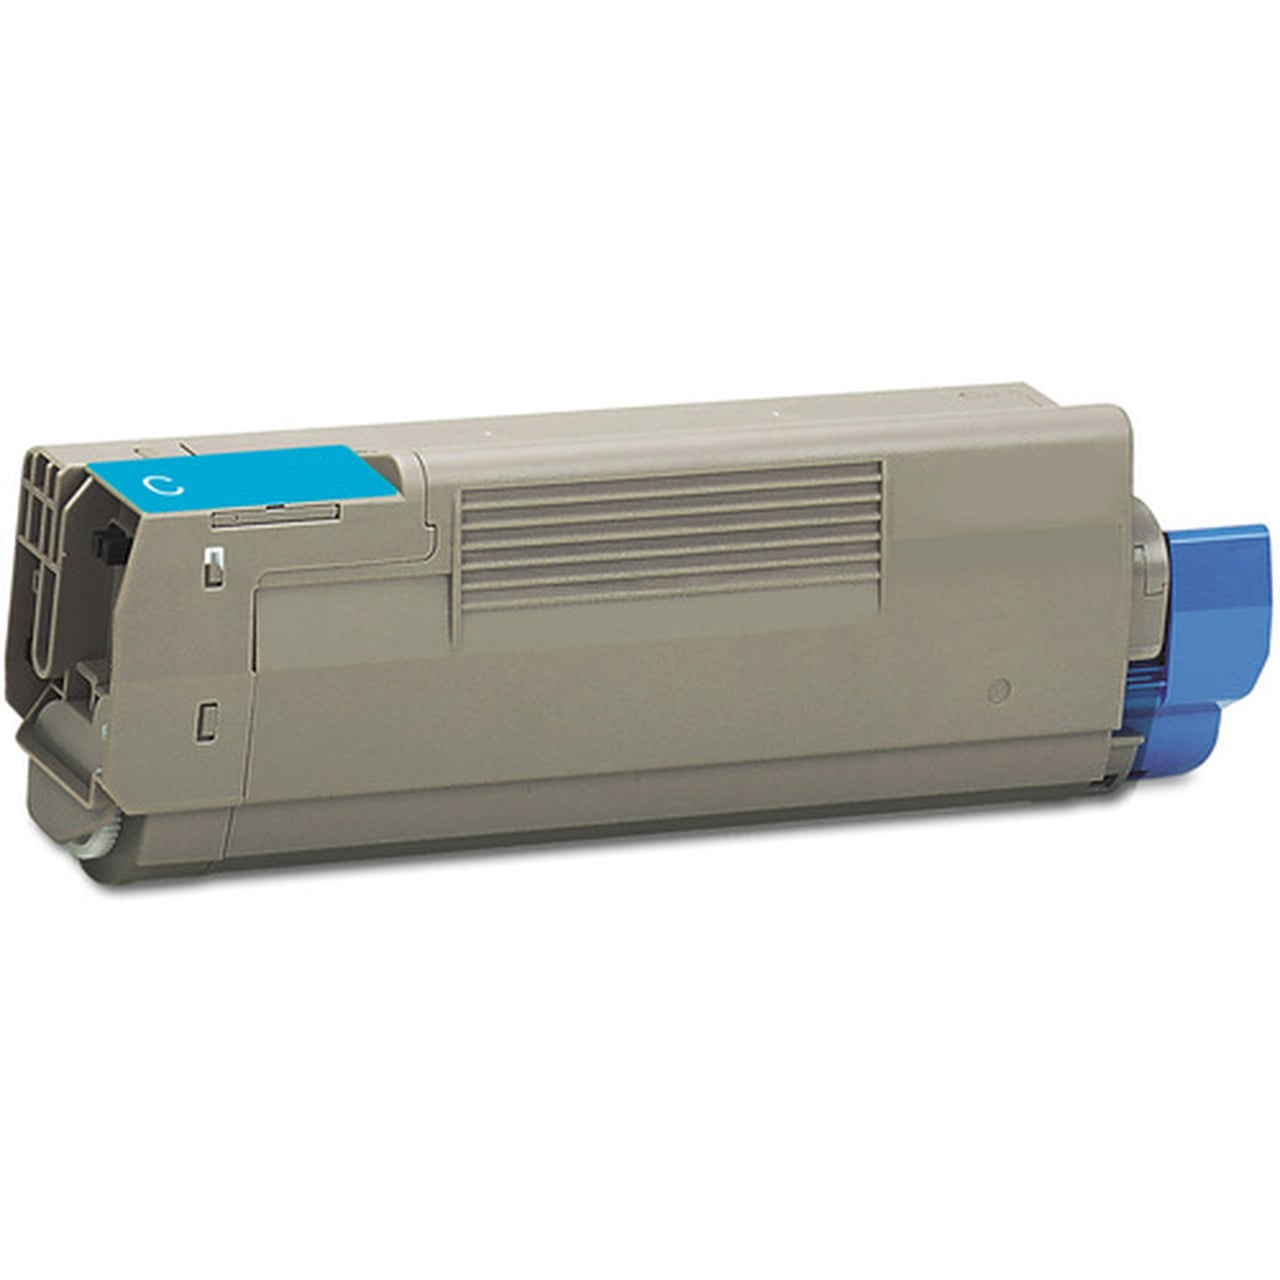 43324403 Toner Cartridge - Okidata Compatible (Cyan)